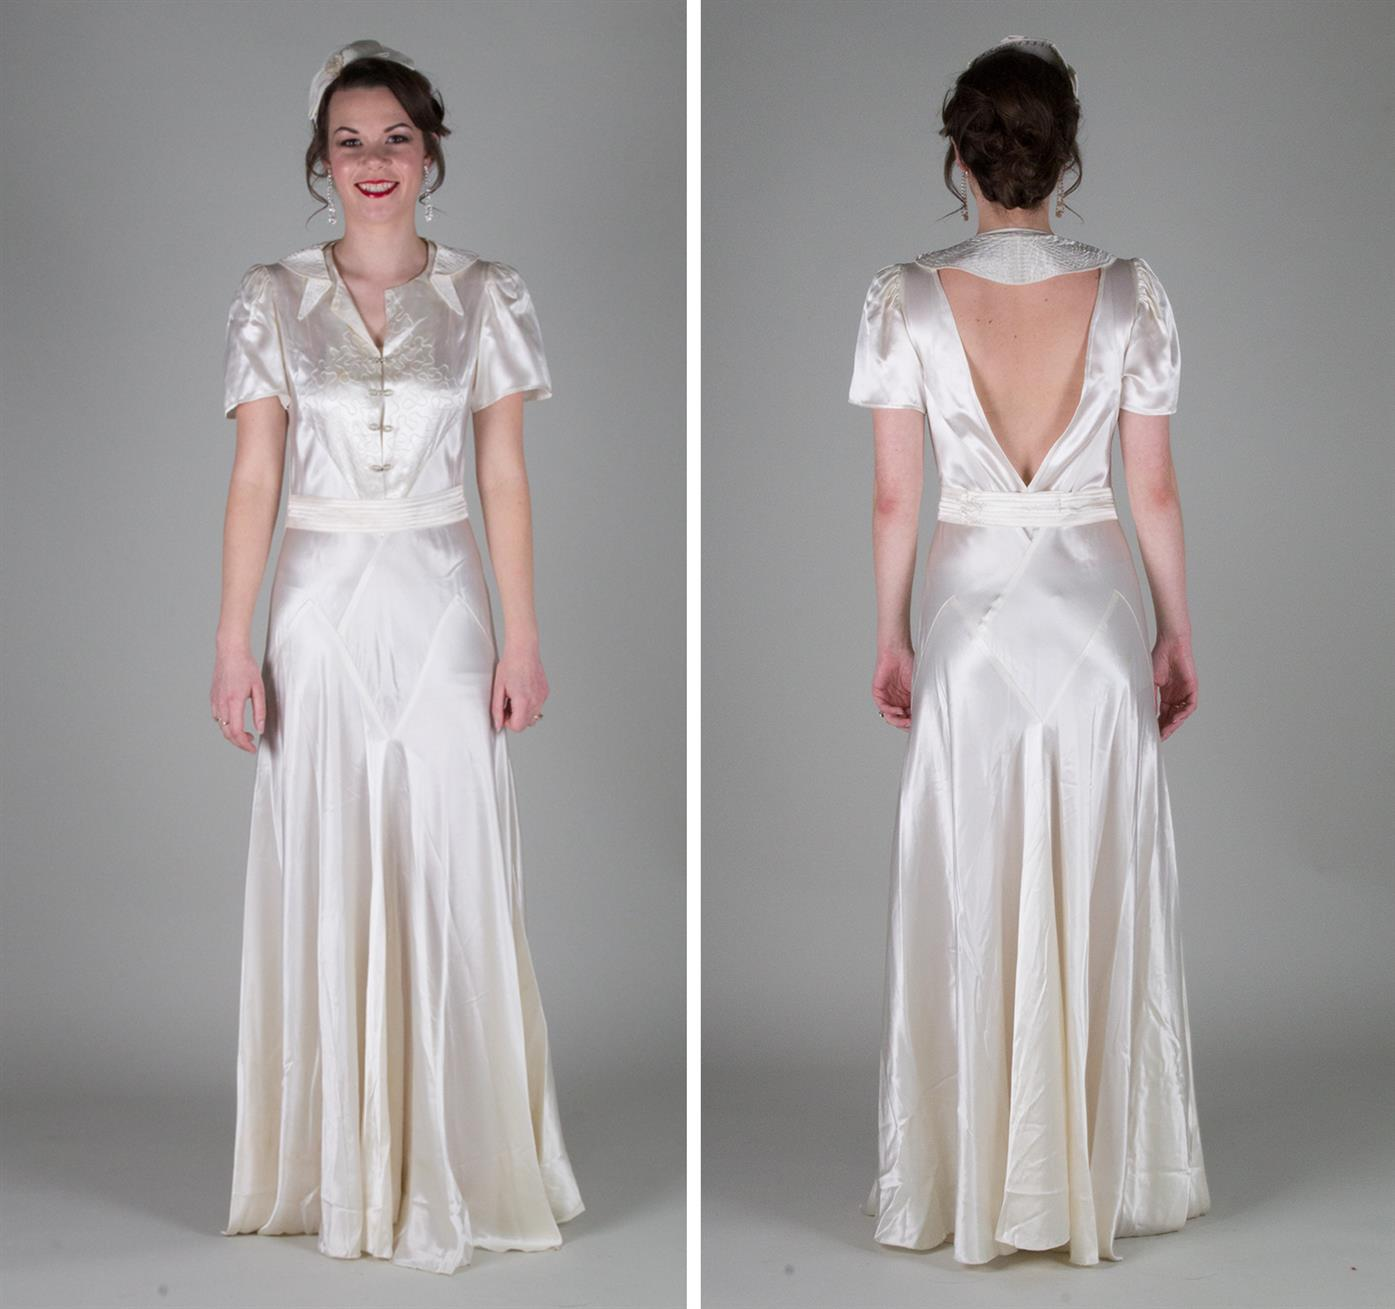 dreamy vintage wedding dresses from authentic vintage